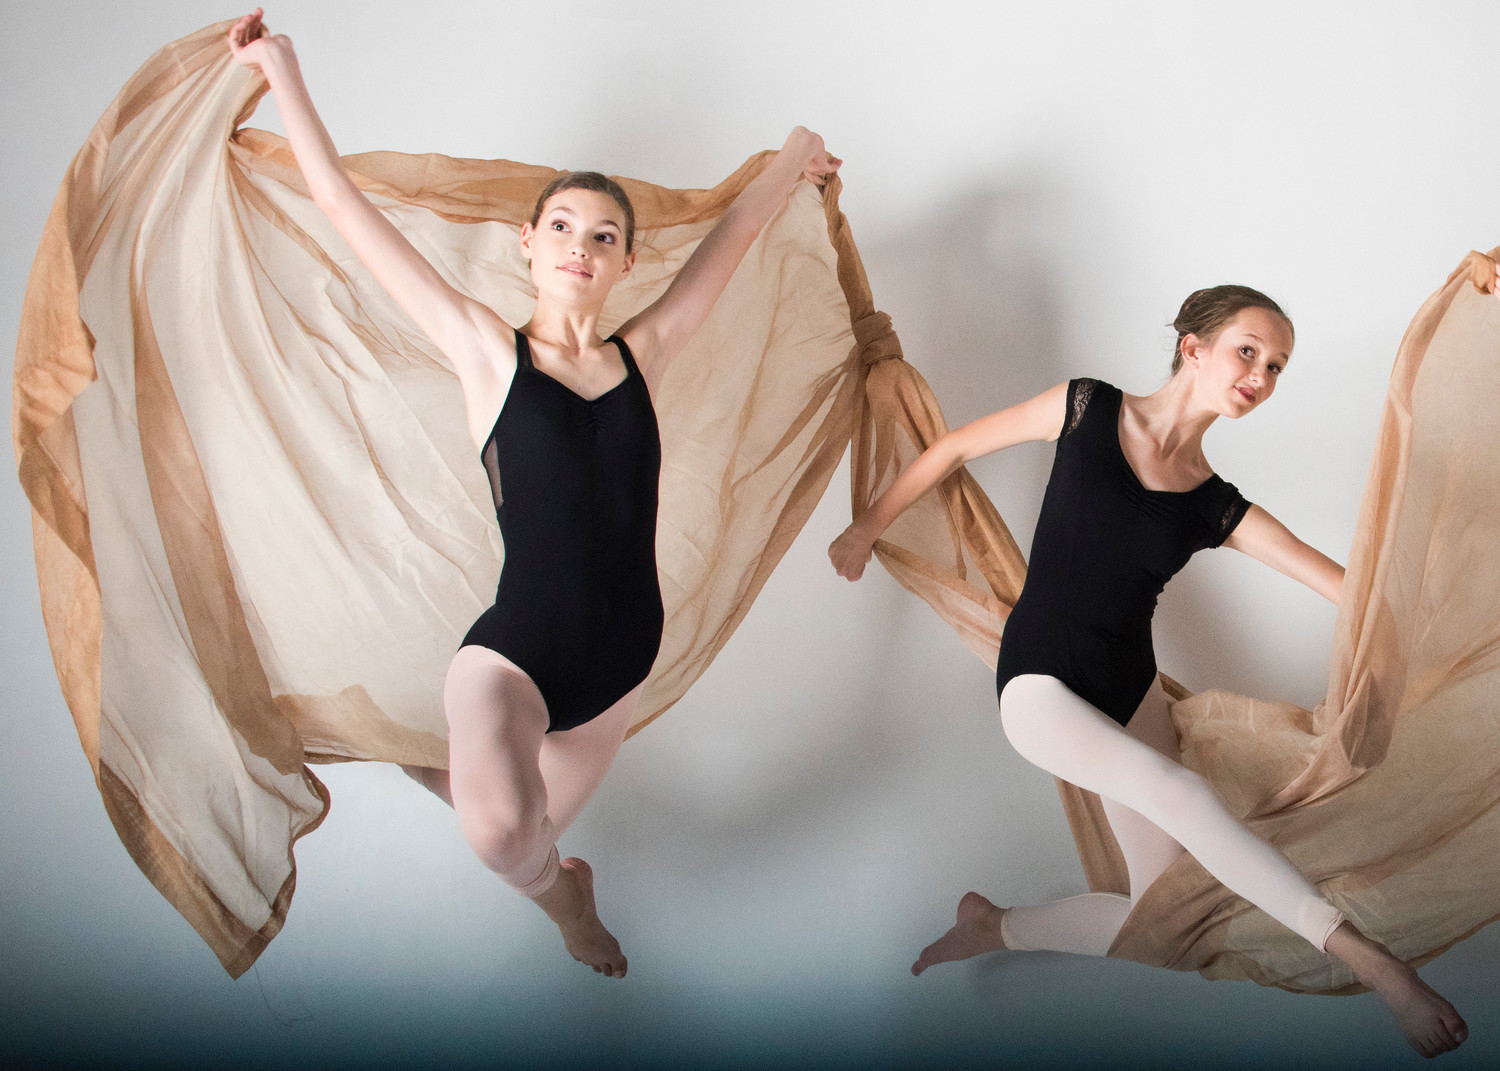 Ponte Vedra Ballet & Dance Company students Anna Woody and Anne Case